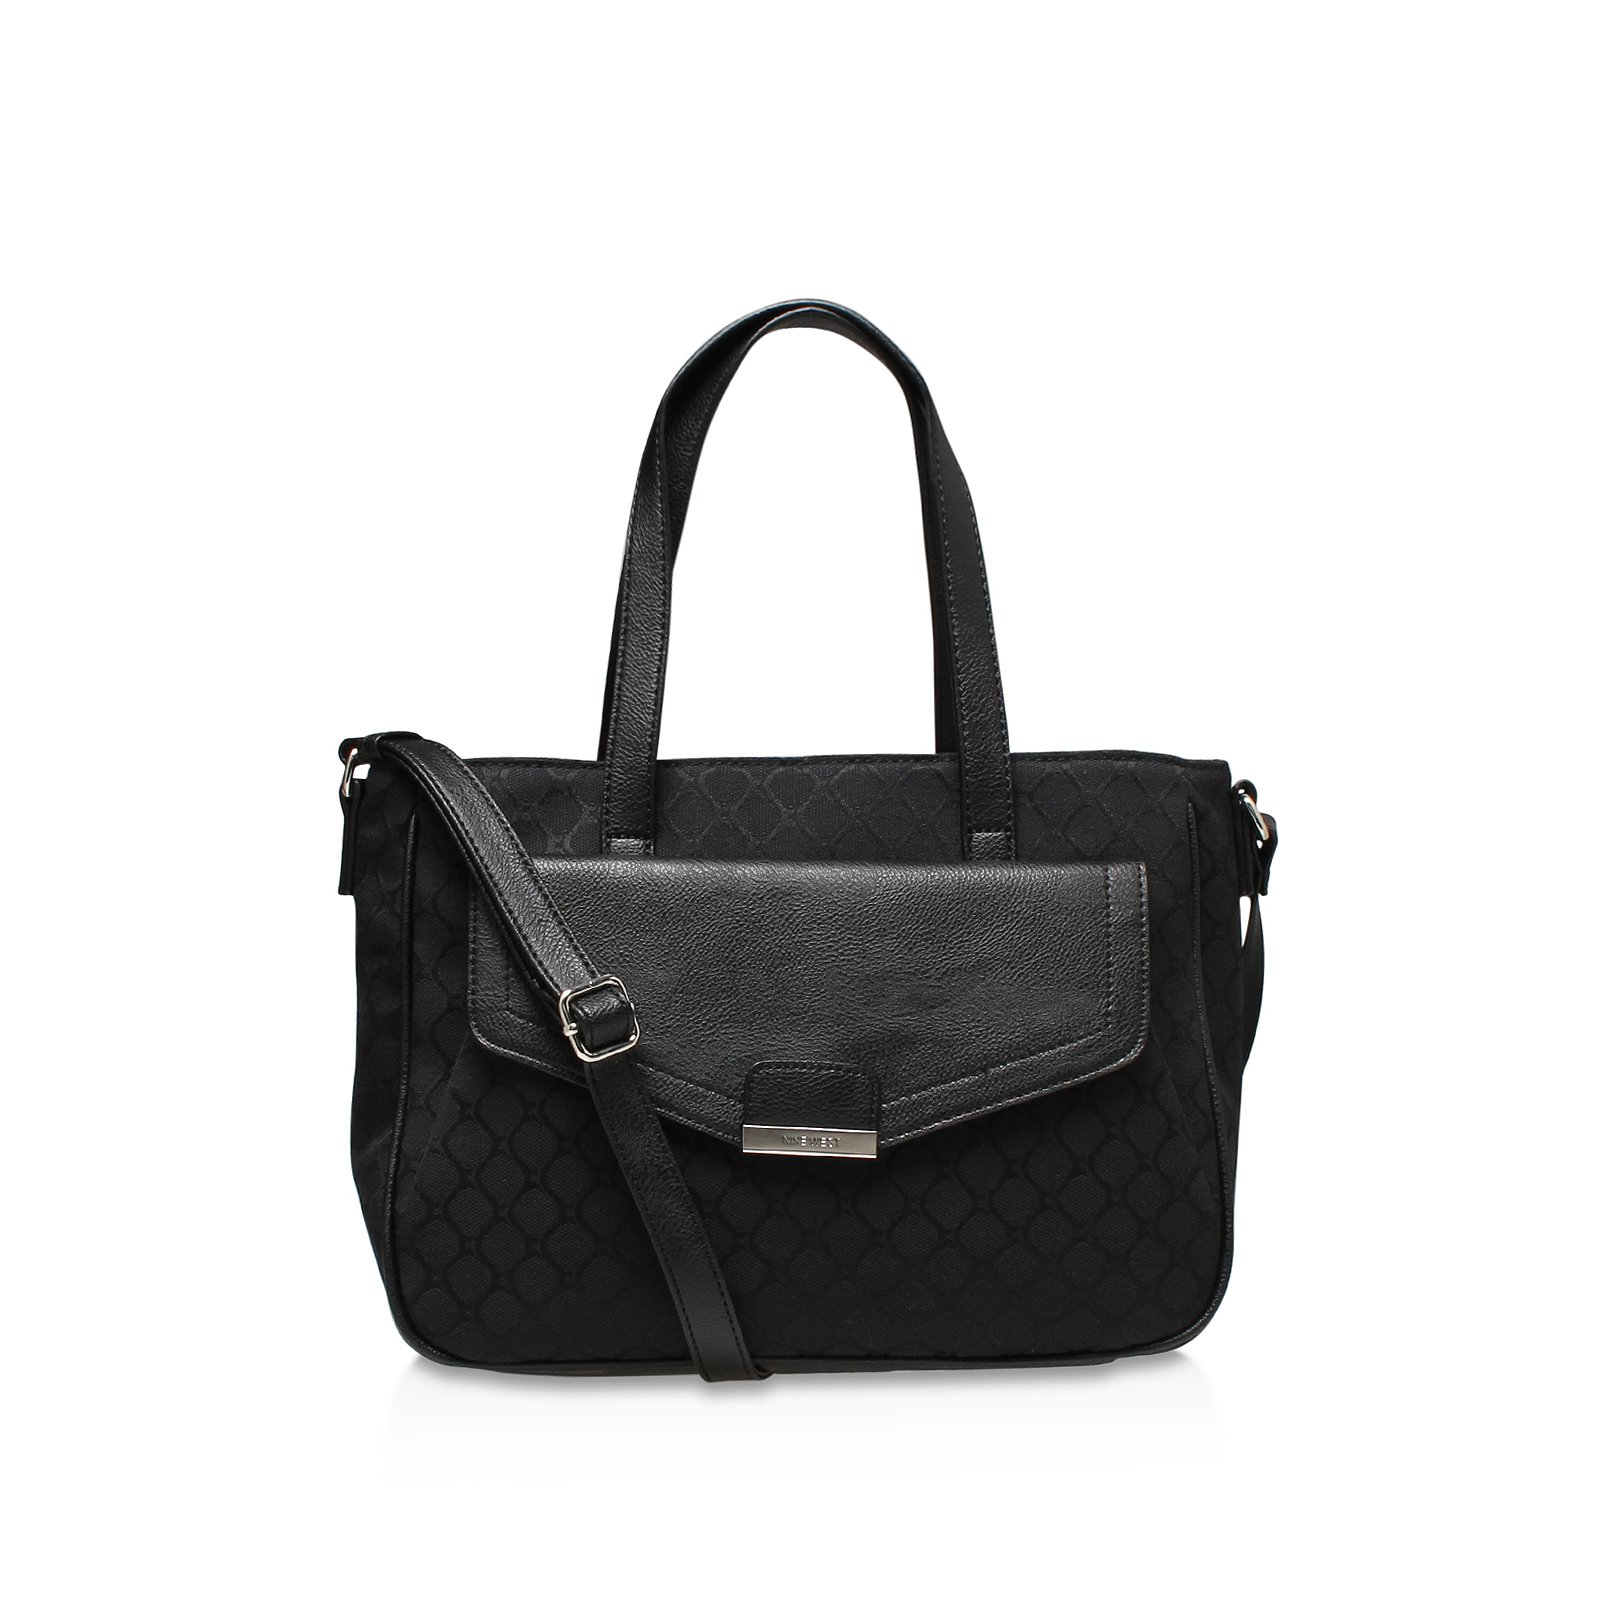 CLAUDETTE SATCHEL